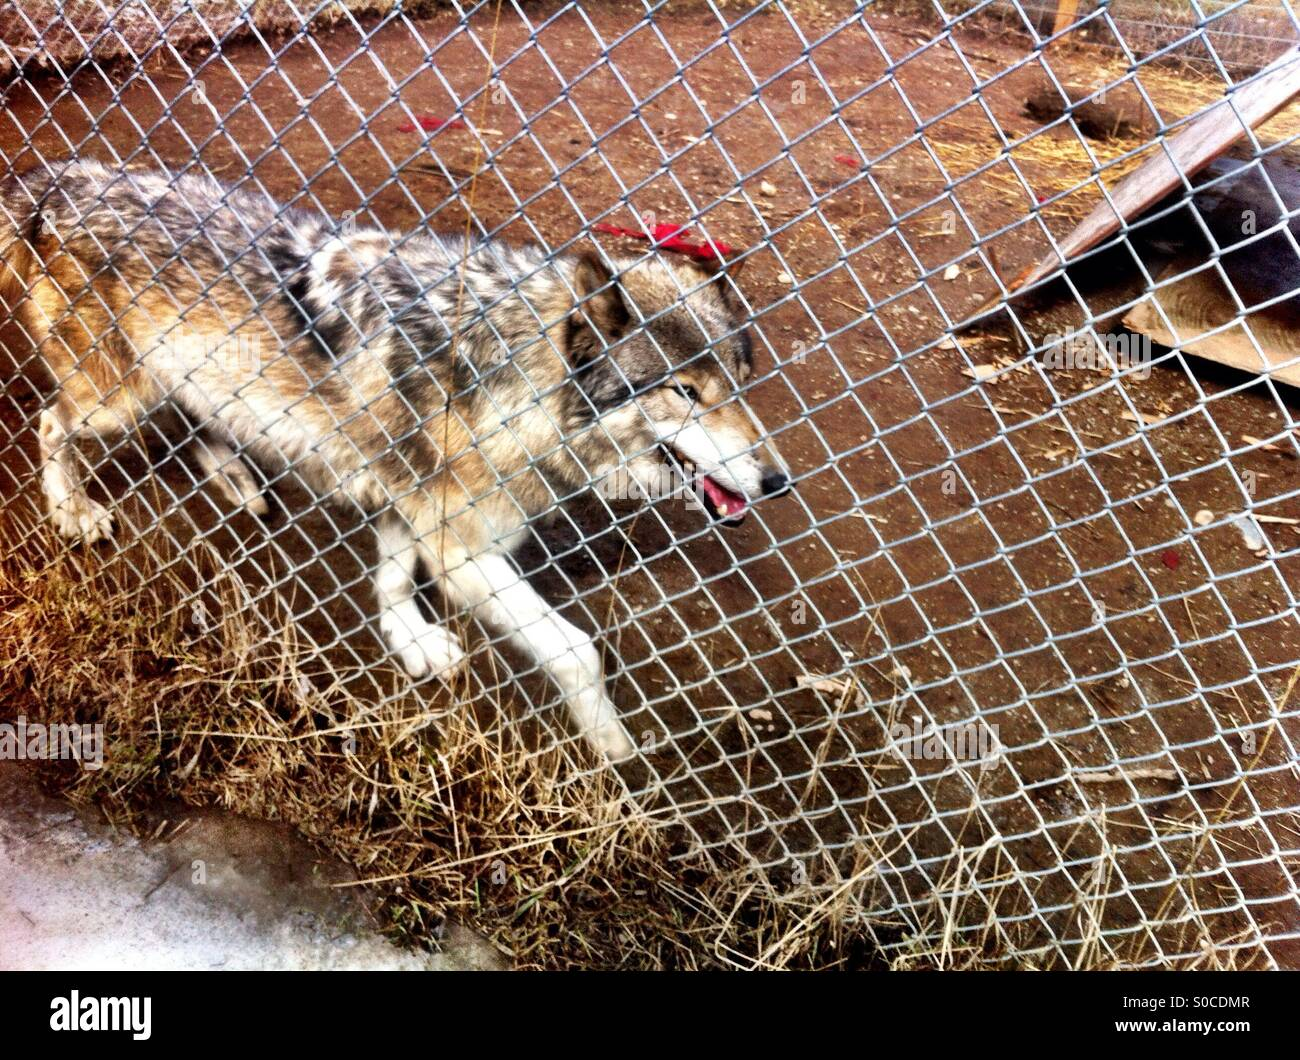 Image result for wolf in cage